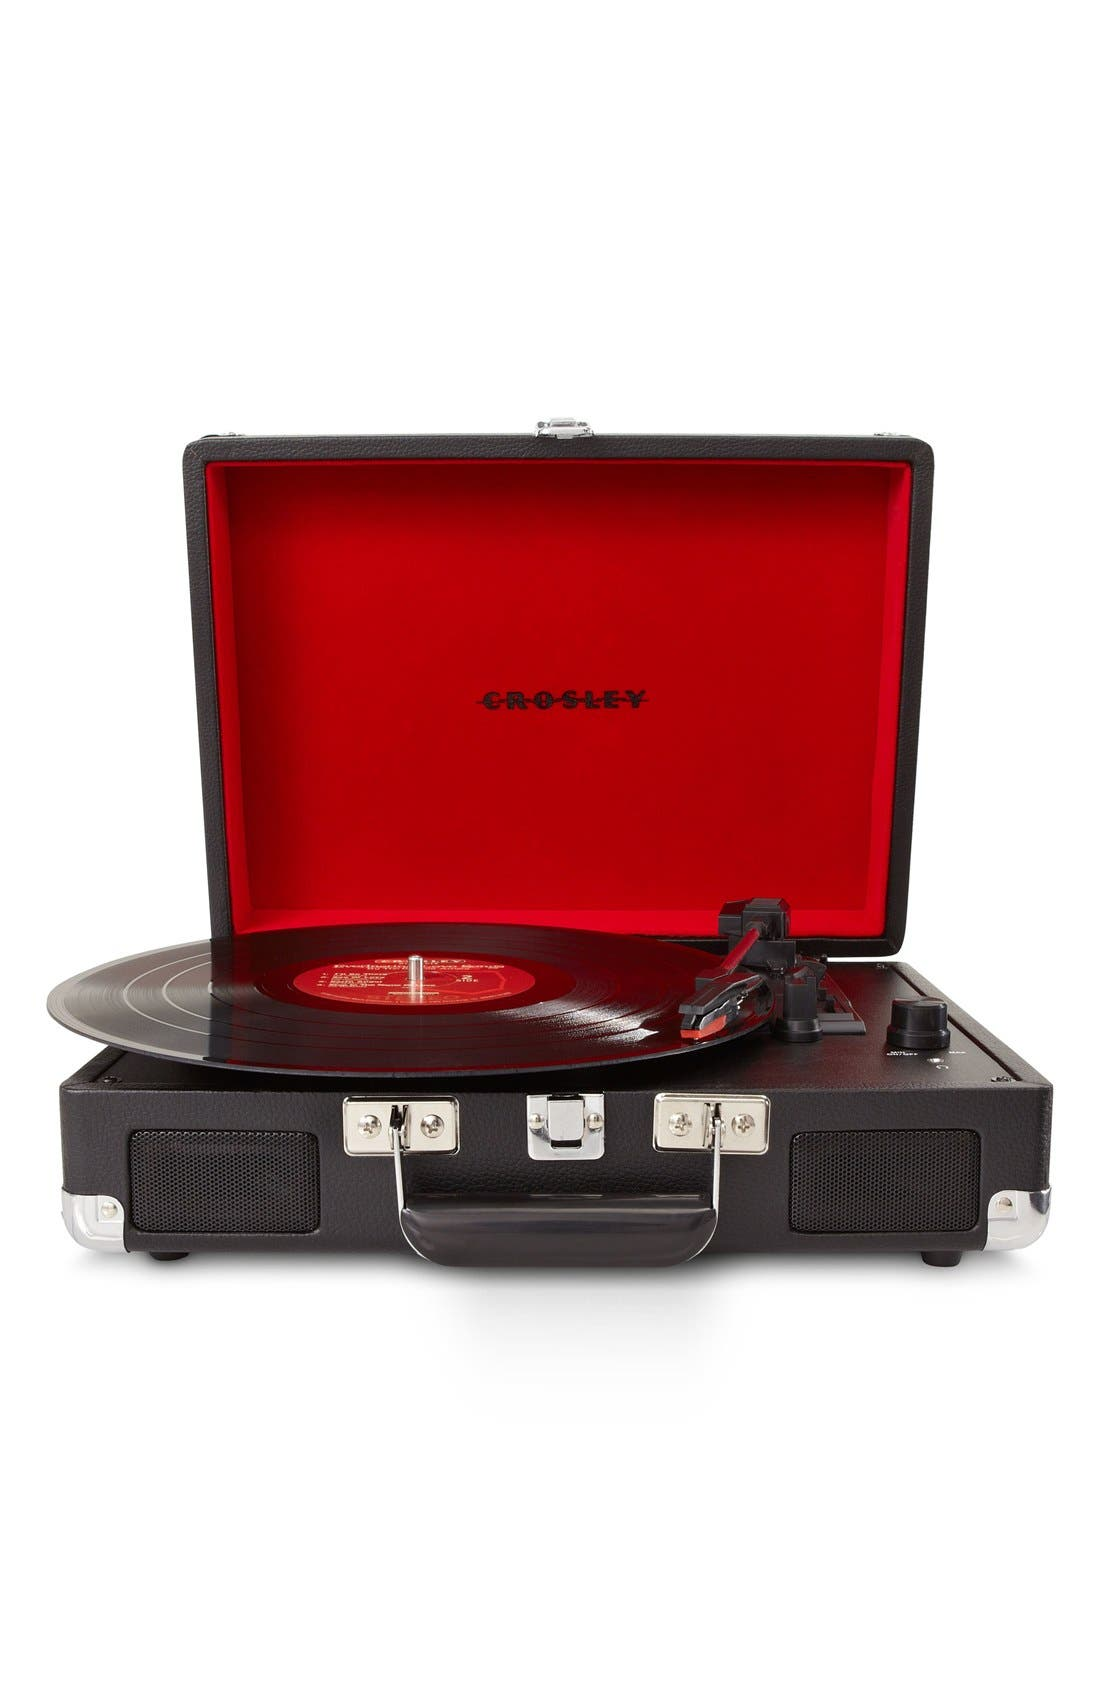 Main Image - Crosley Radio 'Cruiser' Turntable